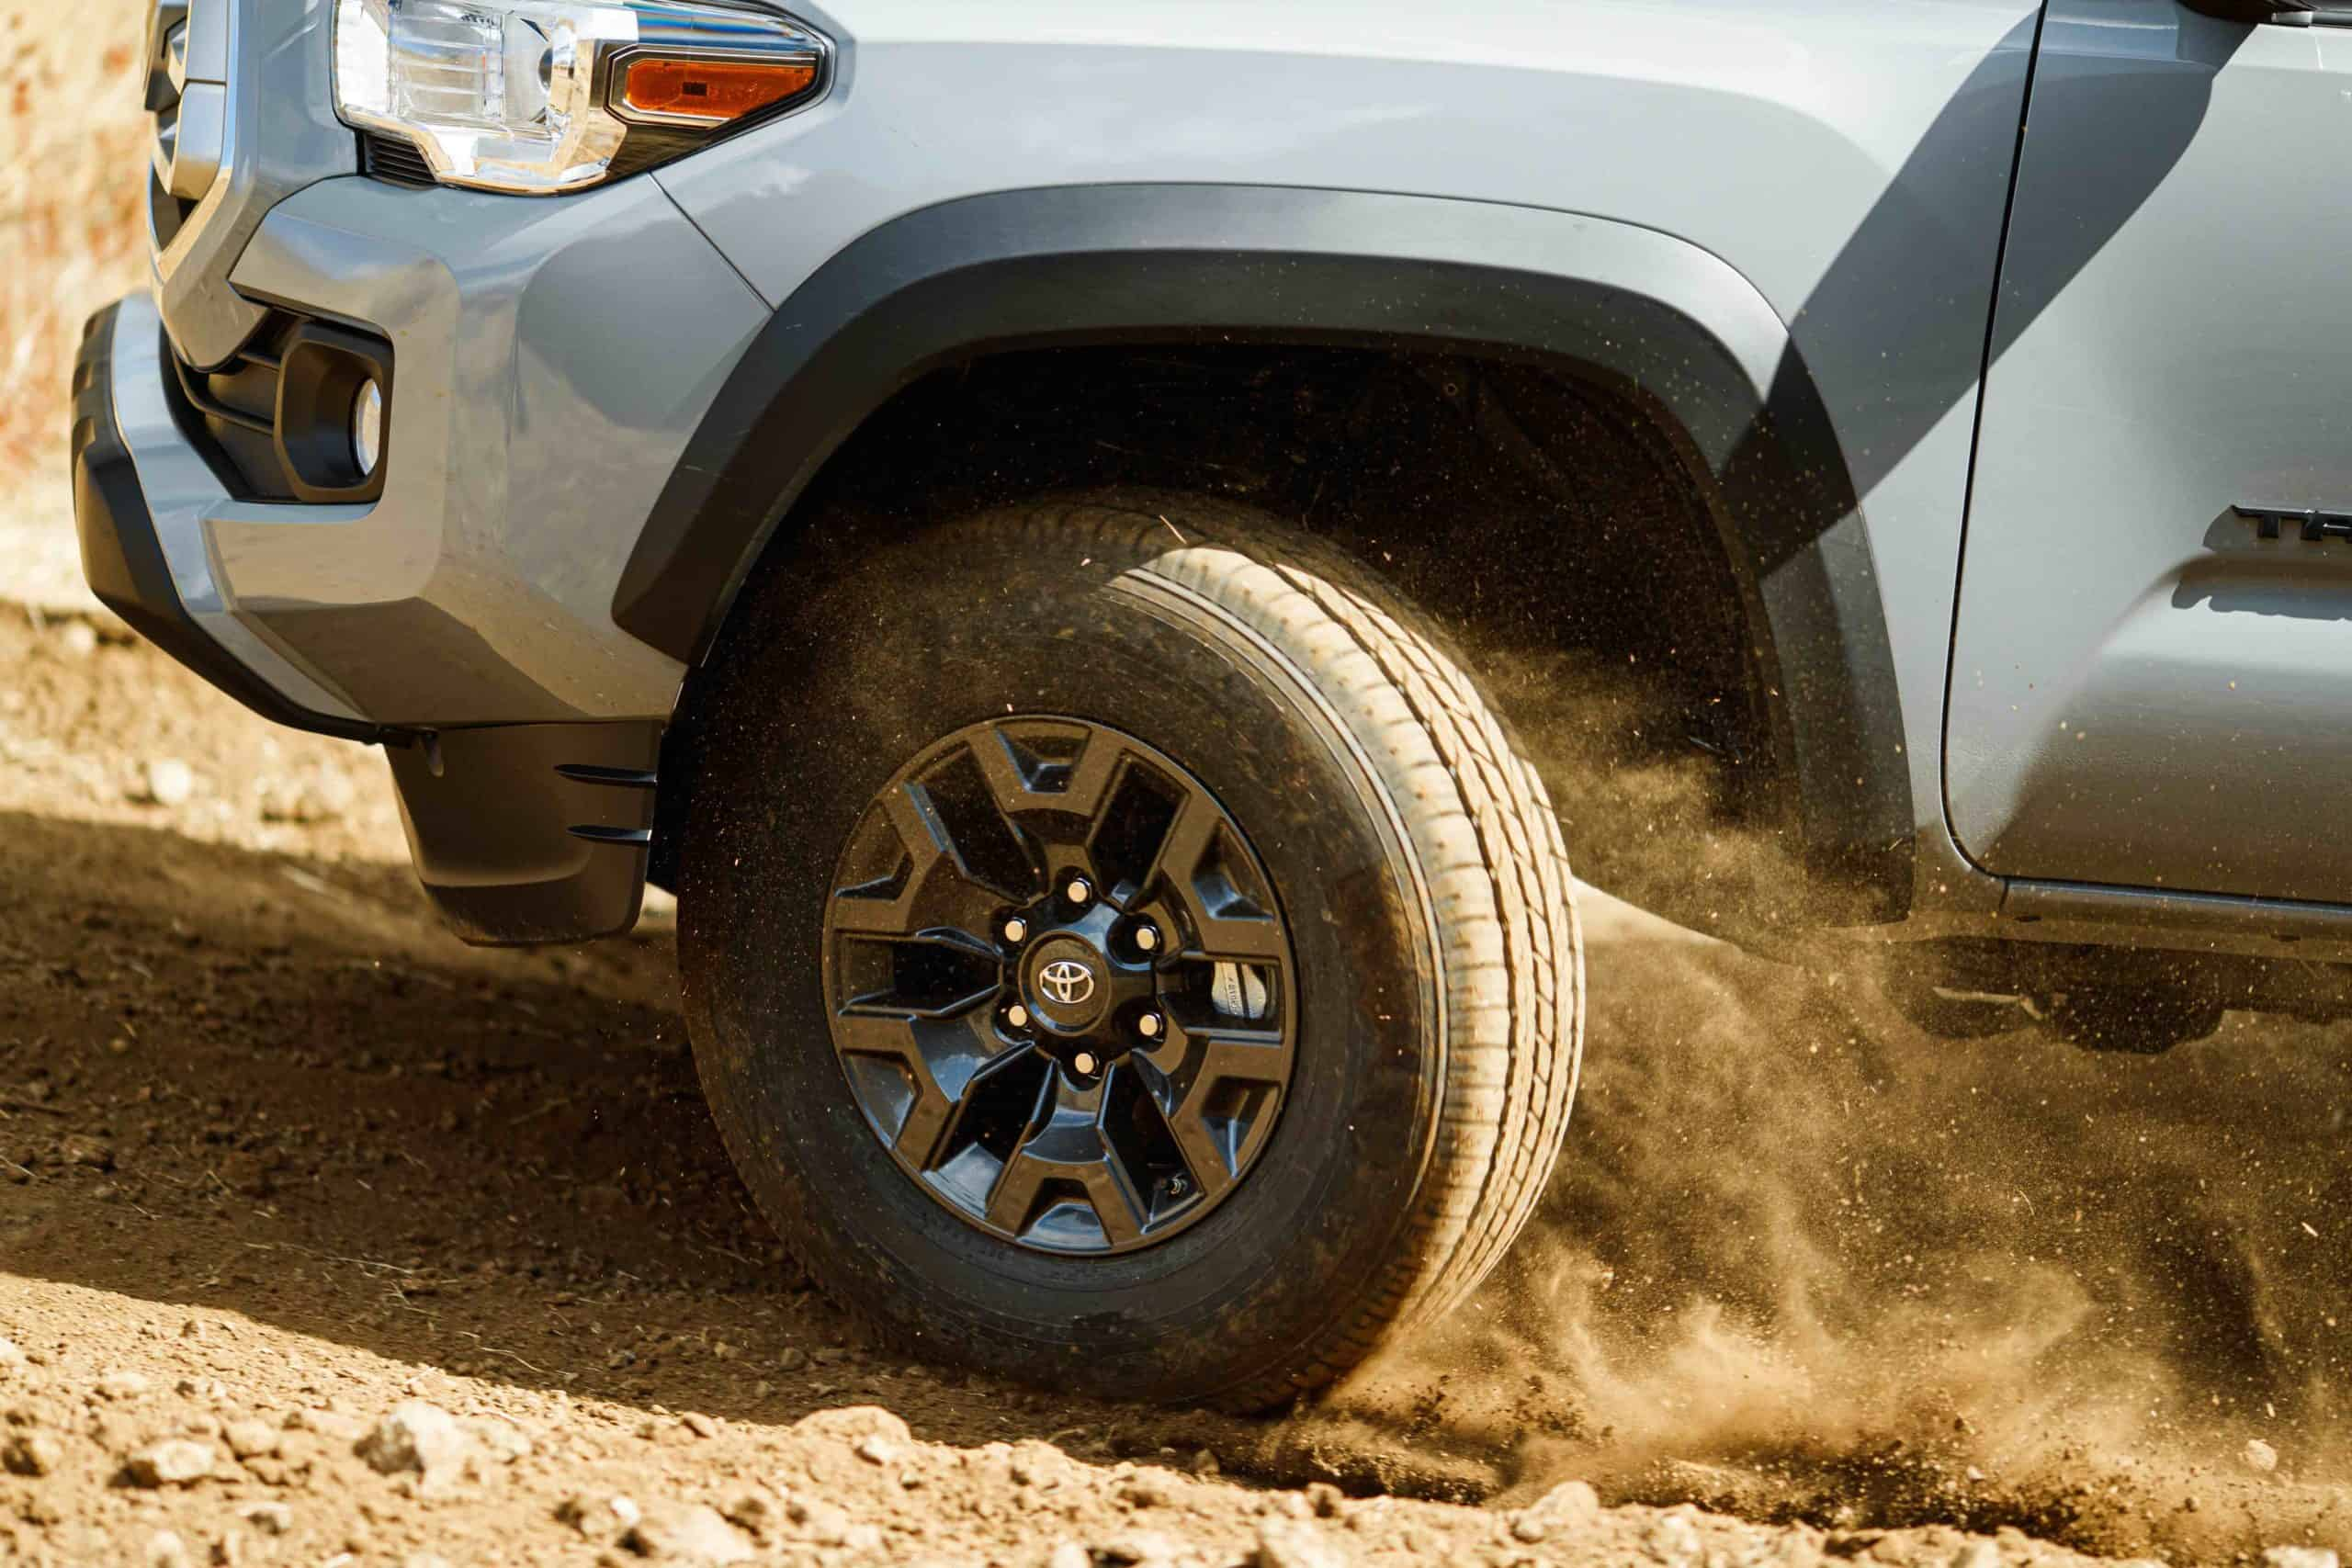 2021 Toyota Tacoma Trail Special Edition tires and dust